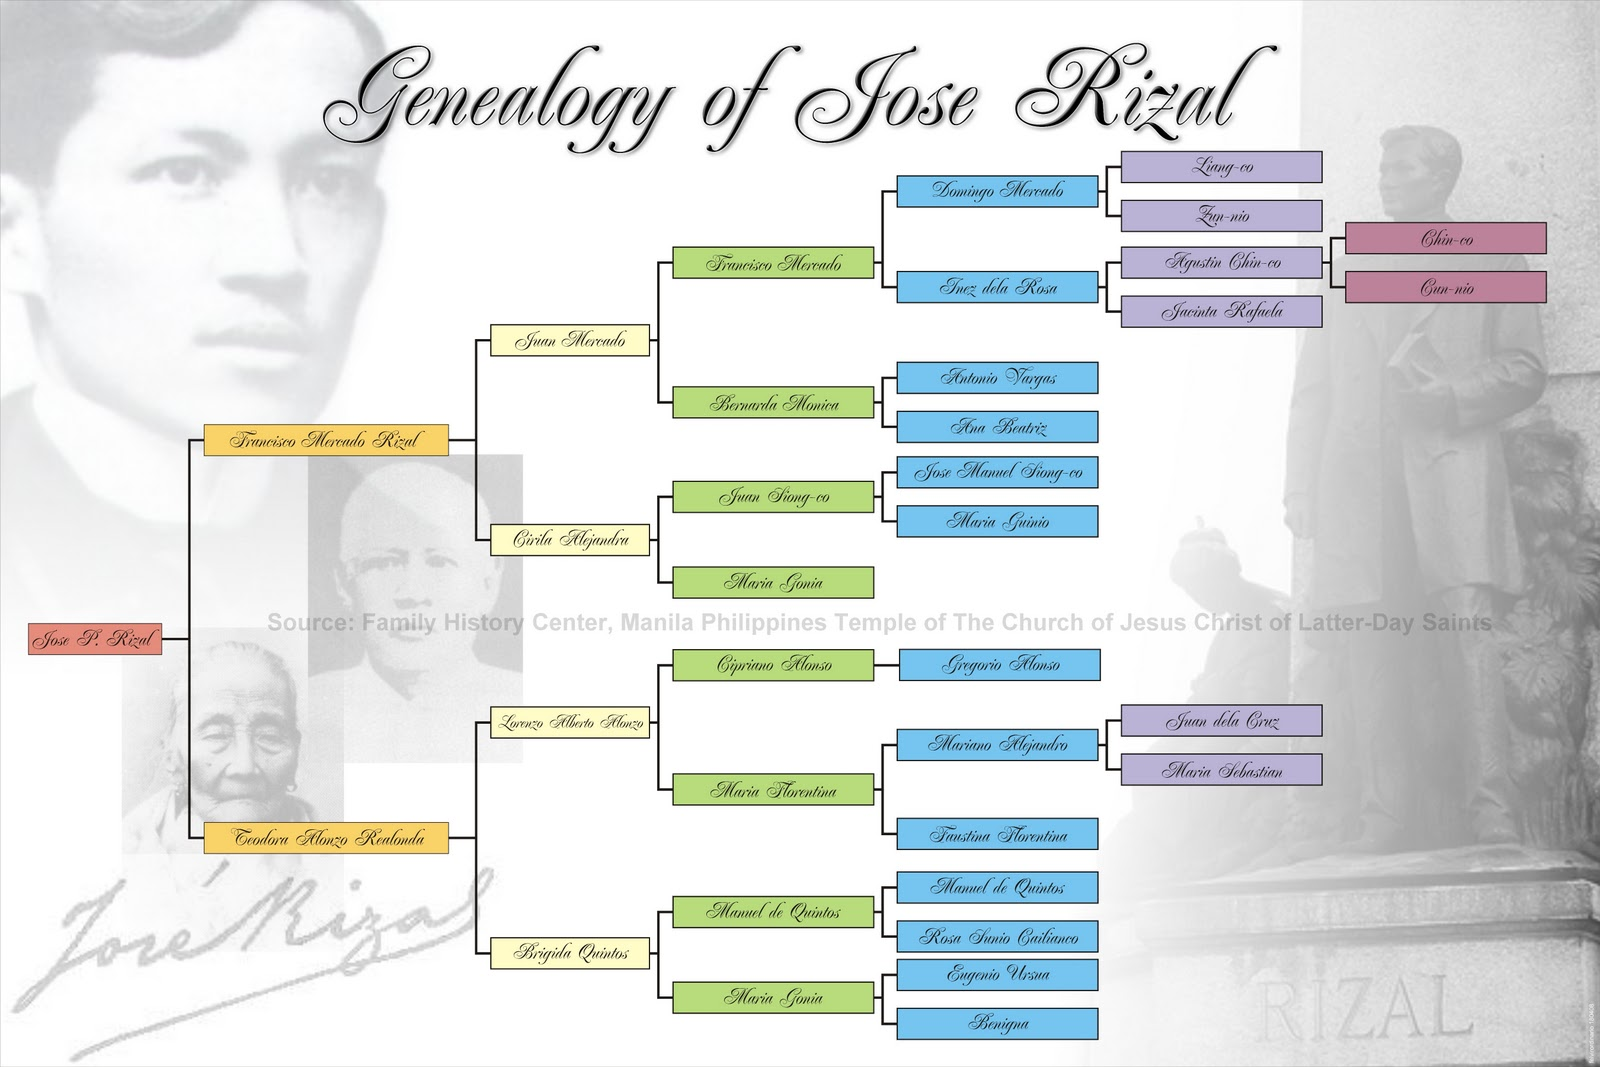 complete family tree diagram chart of jose rizal Elements of short story - free download as the jose rizal pro patria unable to complete a pre-medical course at the university of the philippines.